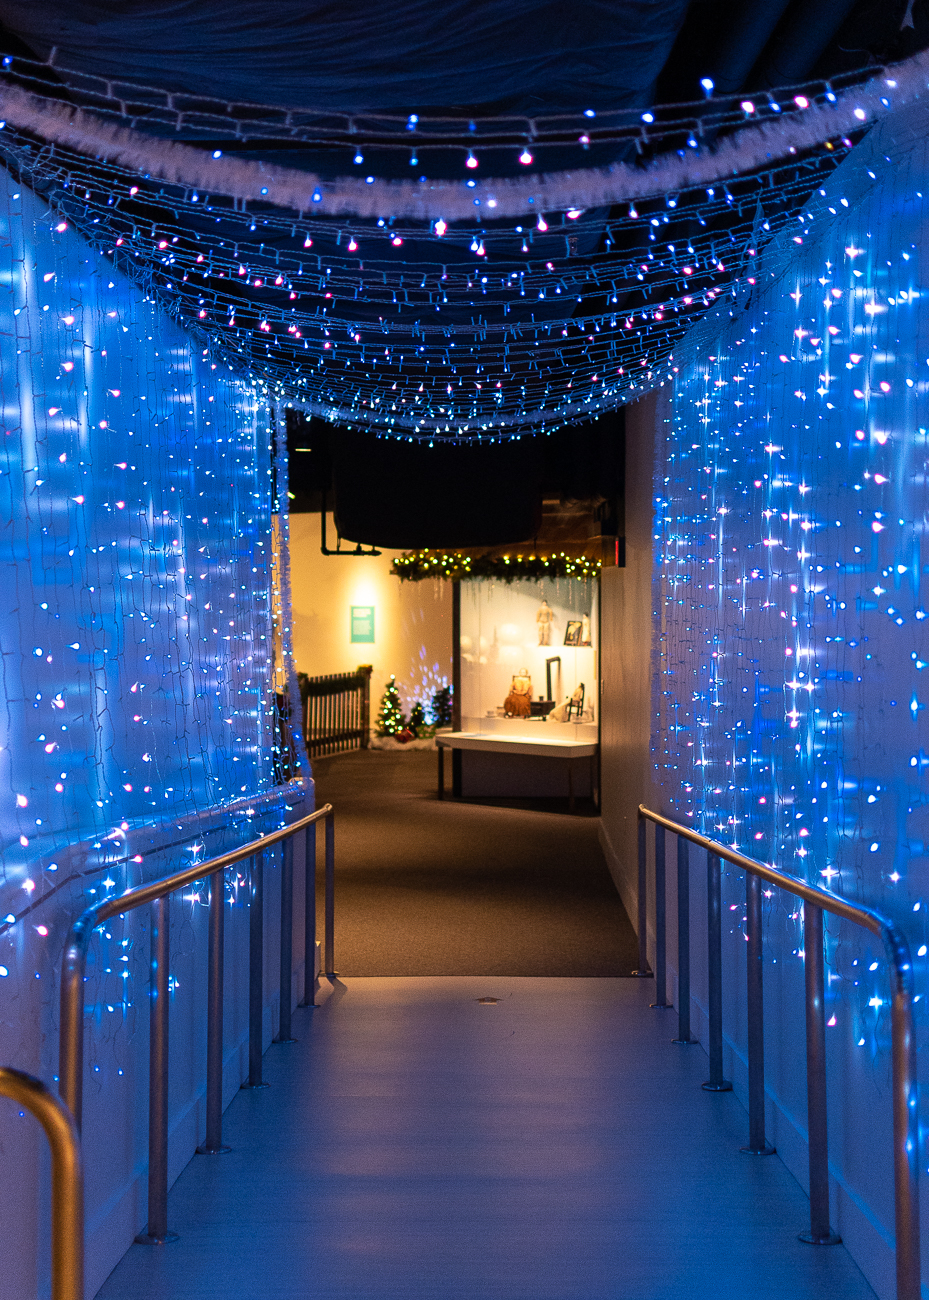 The Northern Lights display greets guests when they enter Holiday Junction. All of the interactive features this year are hands-free and rely on gesture controls to avoid spreading germs. / Image: Phil Armstrong, Cincinnati Refined // Published: 11.15.20